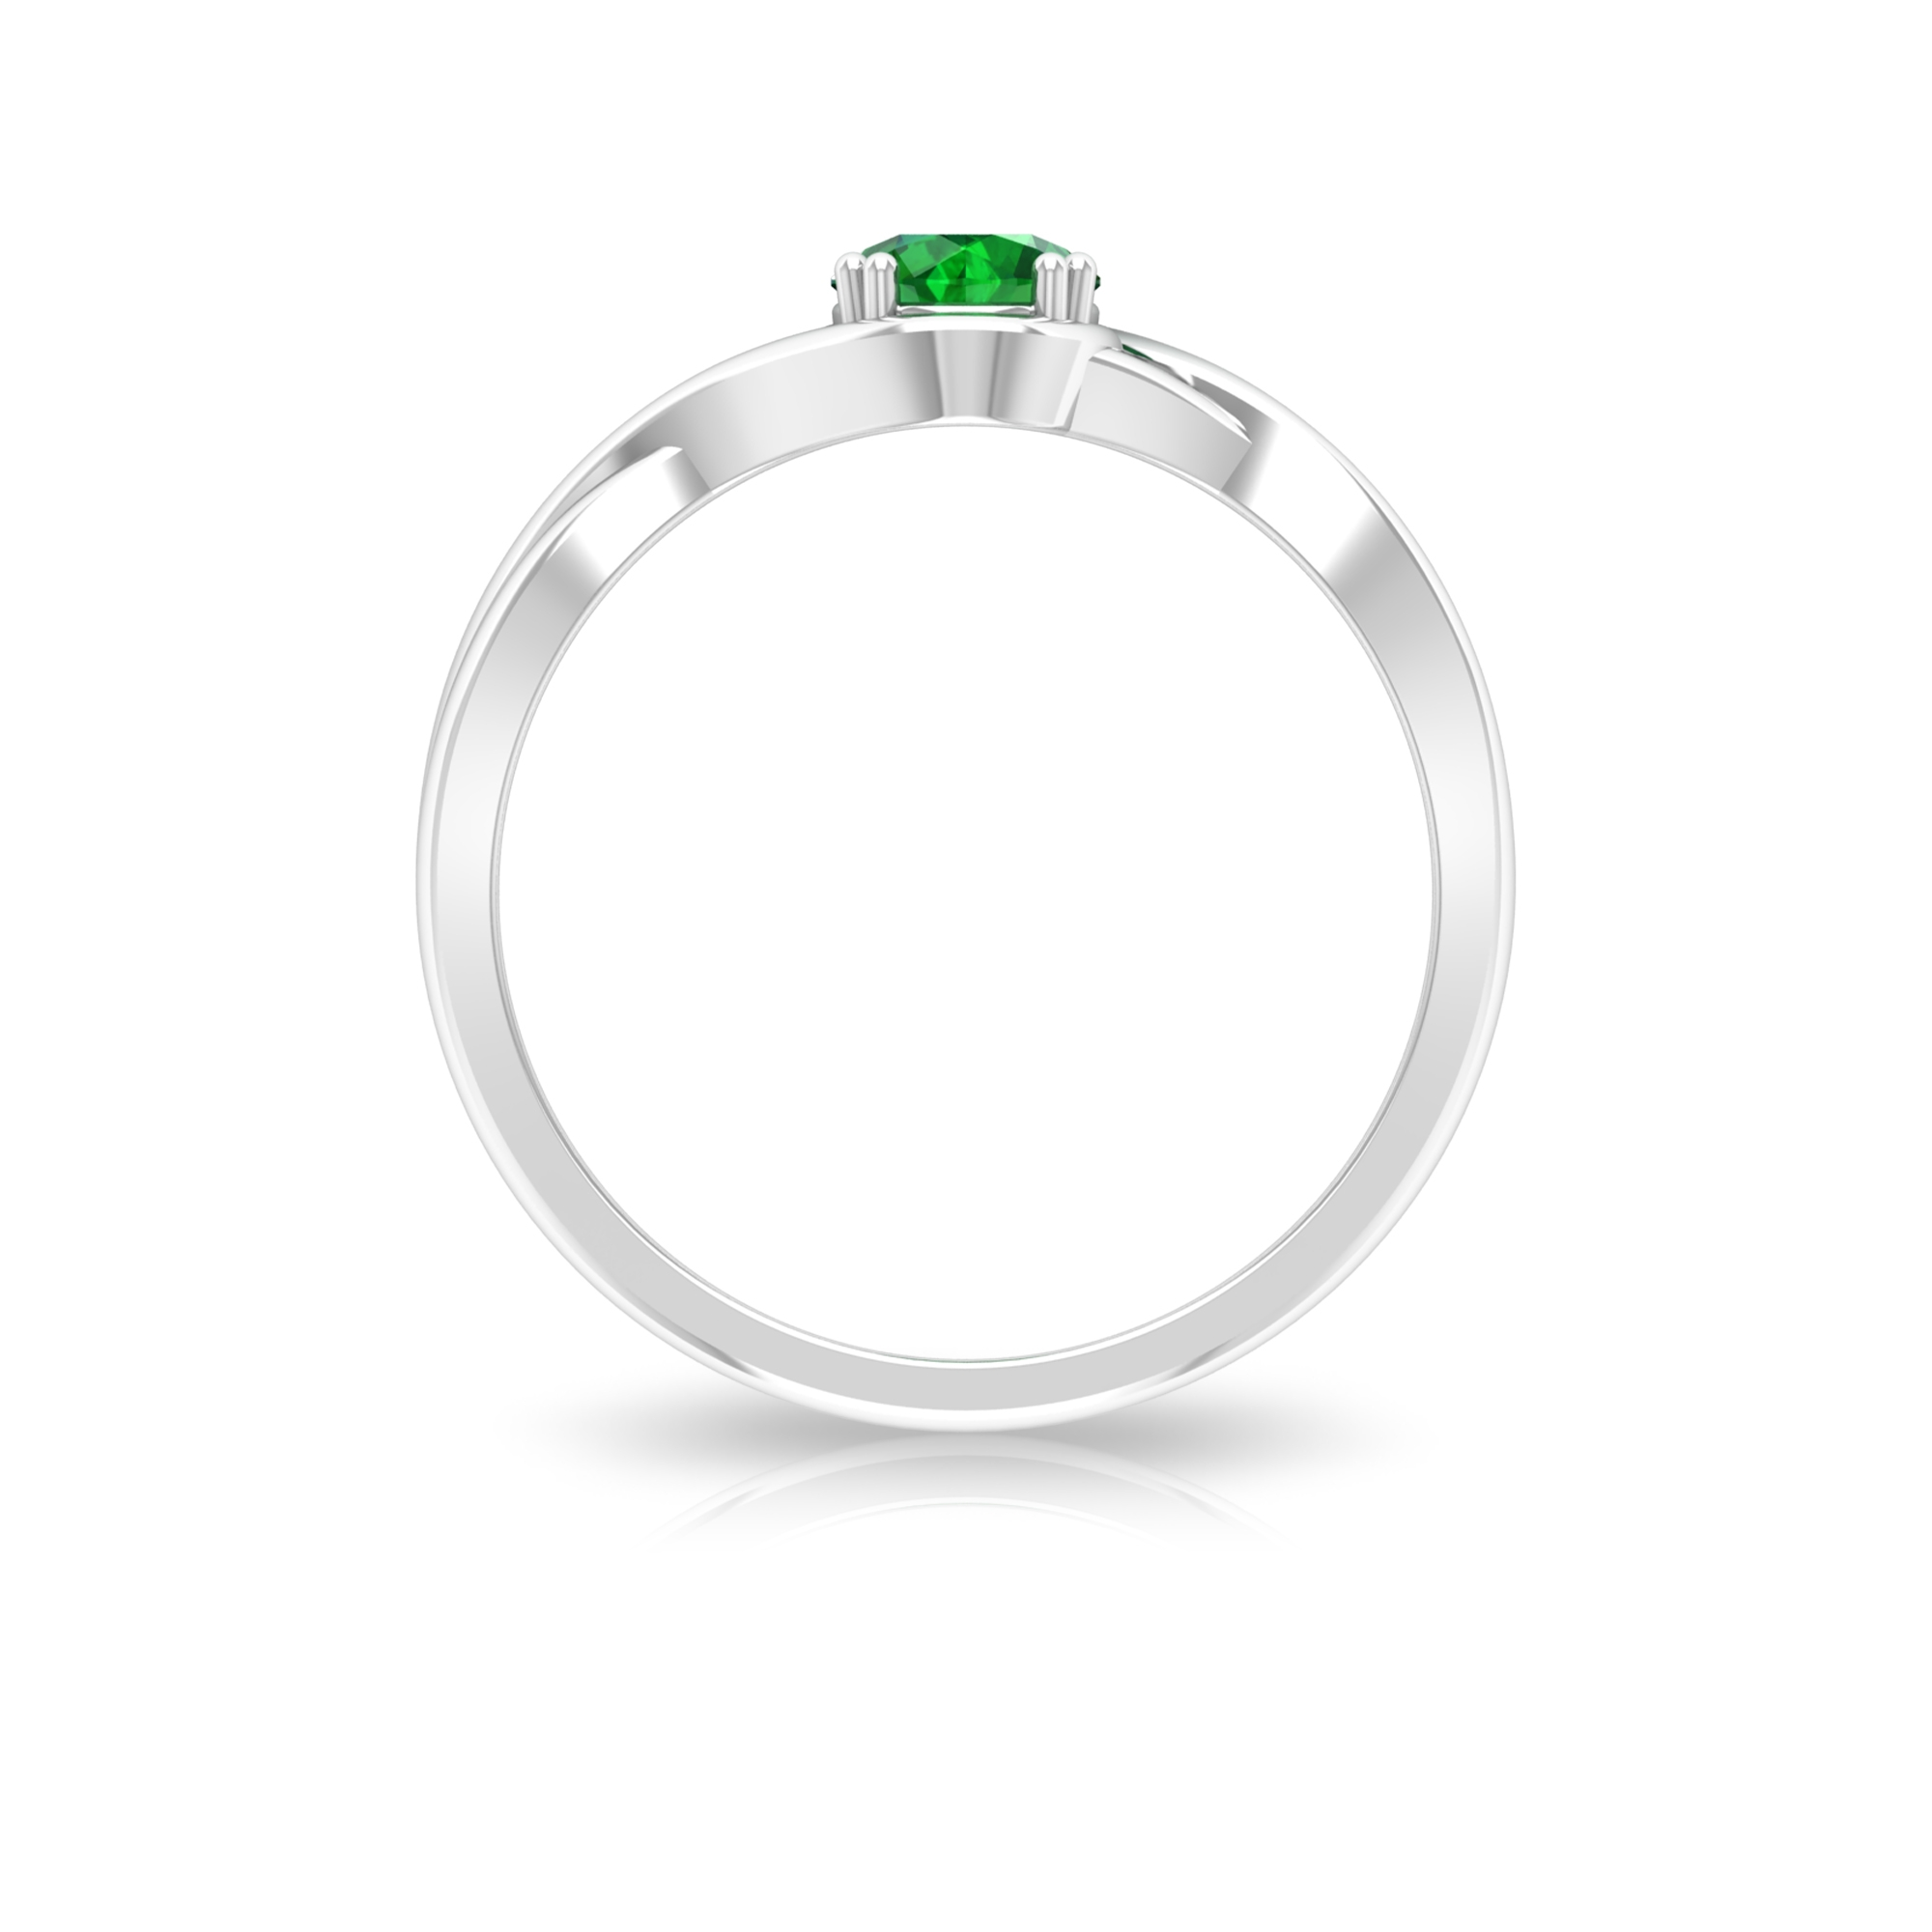 5 MM Round Shape Emerald Solitaire Ring in Double Prong Setting with Crossover Shank